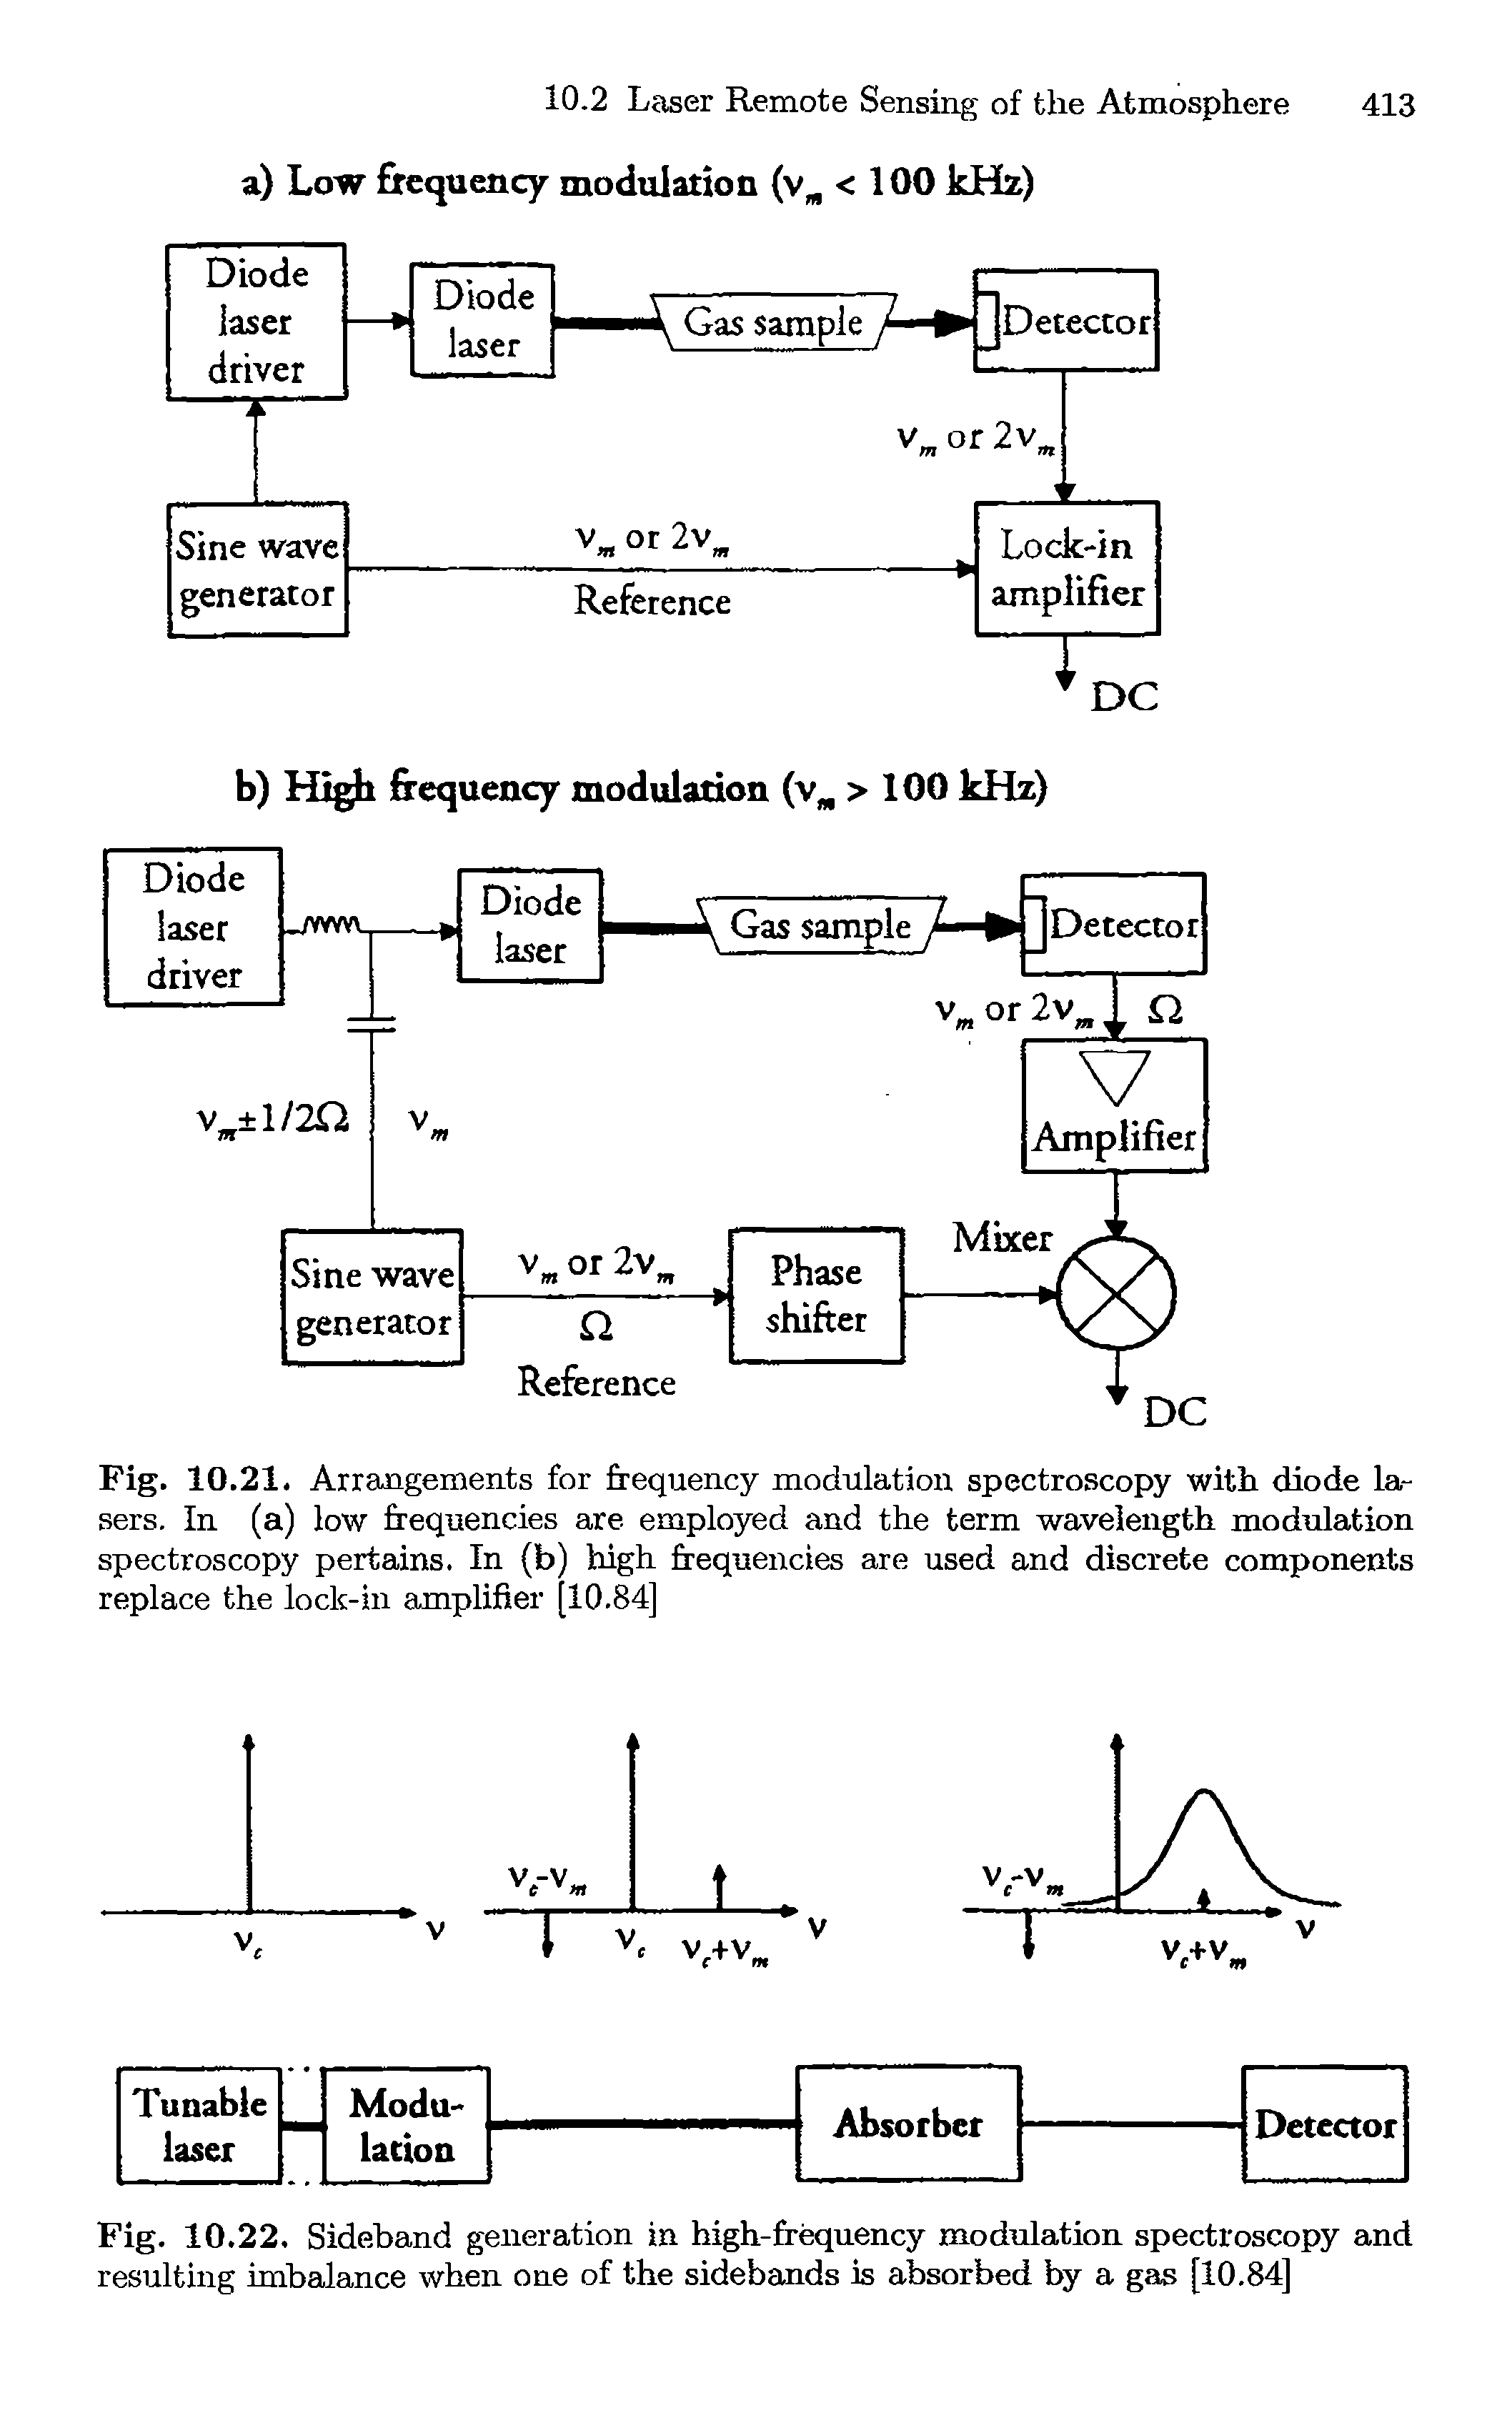 Fig. 10.22. Sideband generation in high-frequency modulation spectroscopy and resulting imbalance when one of the sidebands is absorbed by a gas [10,84]